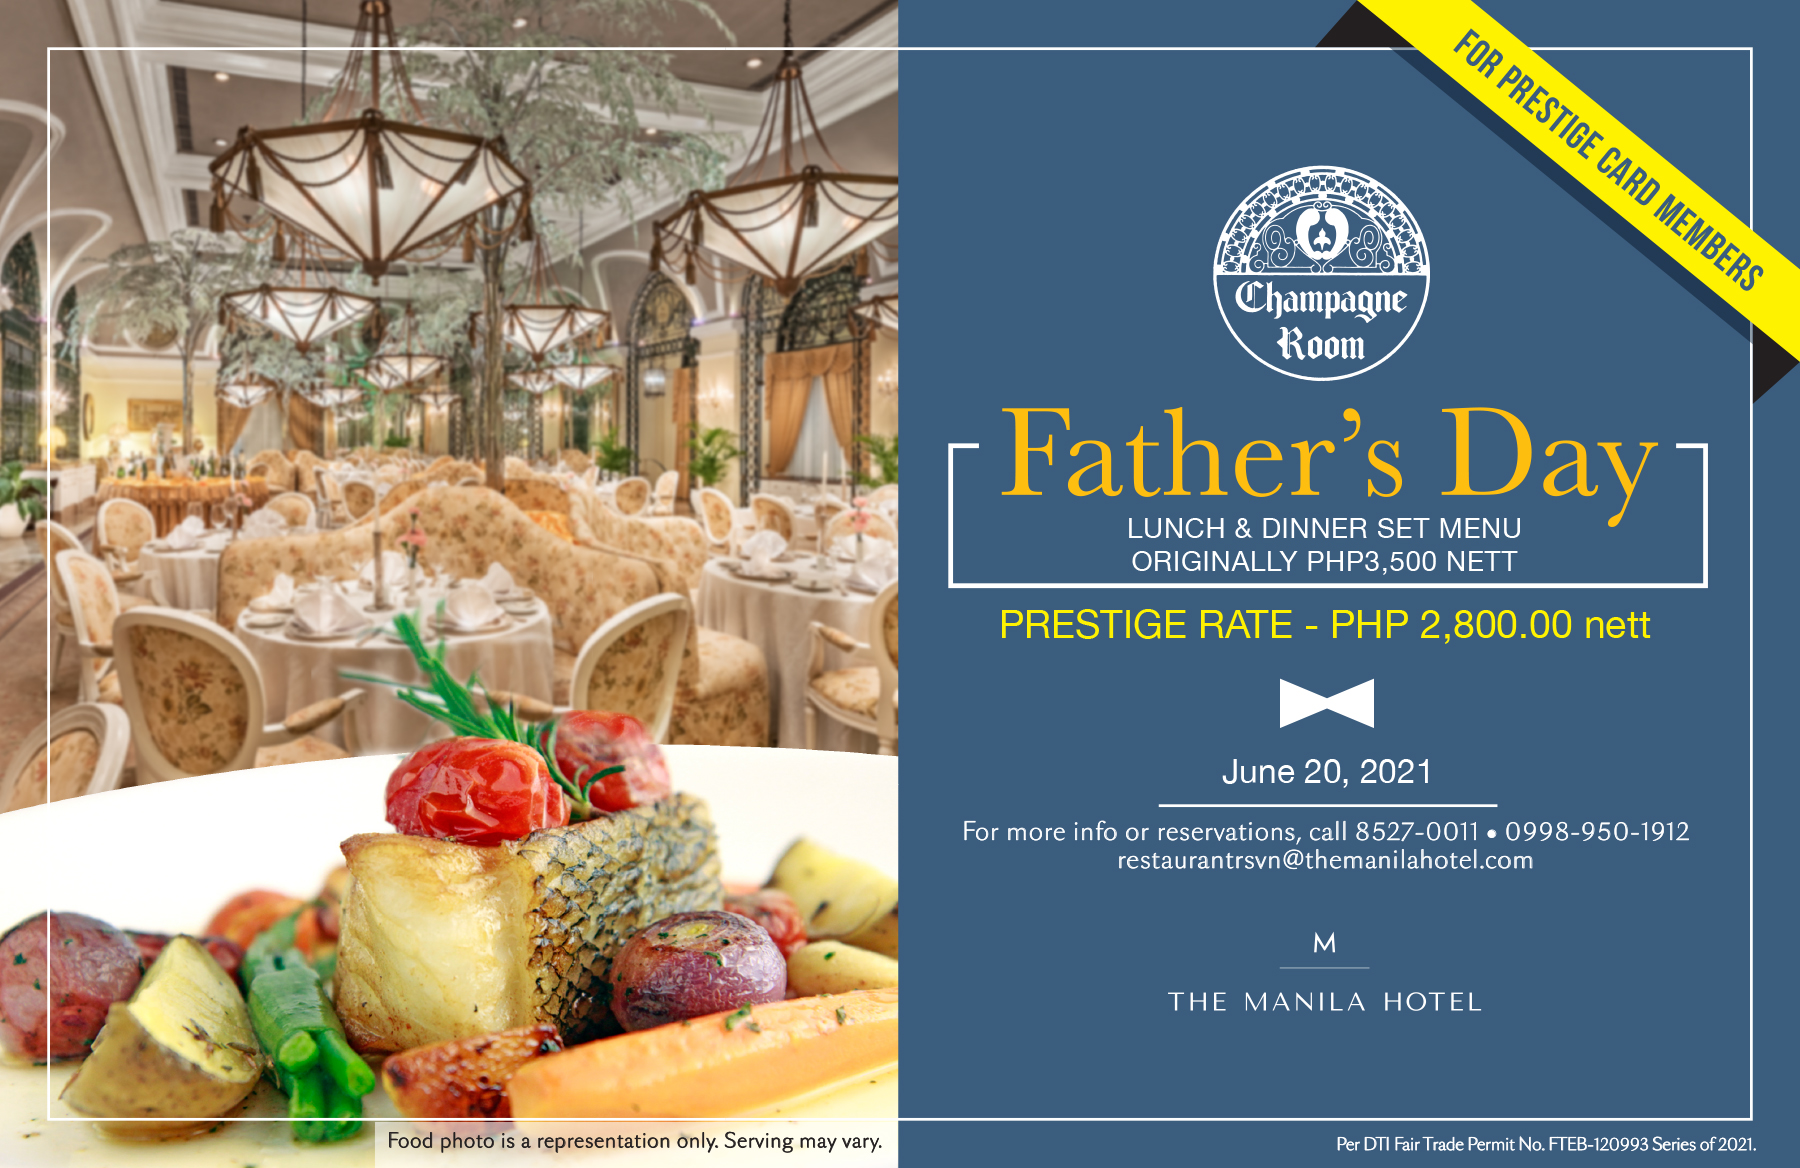 It's Father's Month at The Manila Hotel!